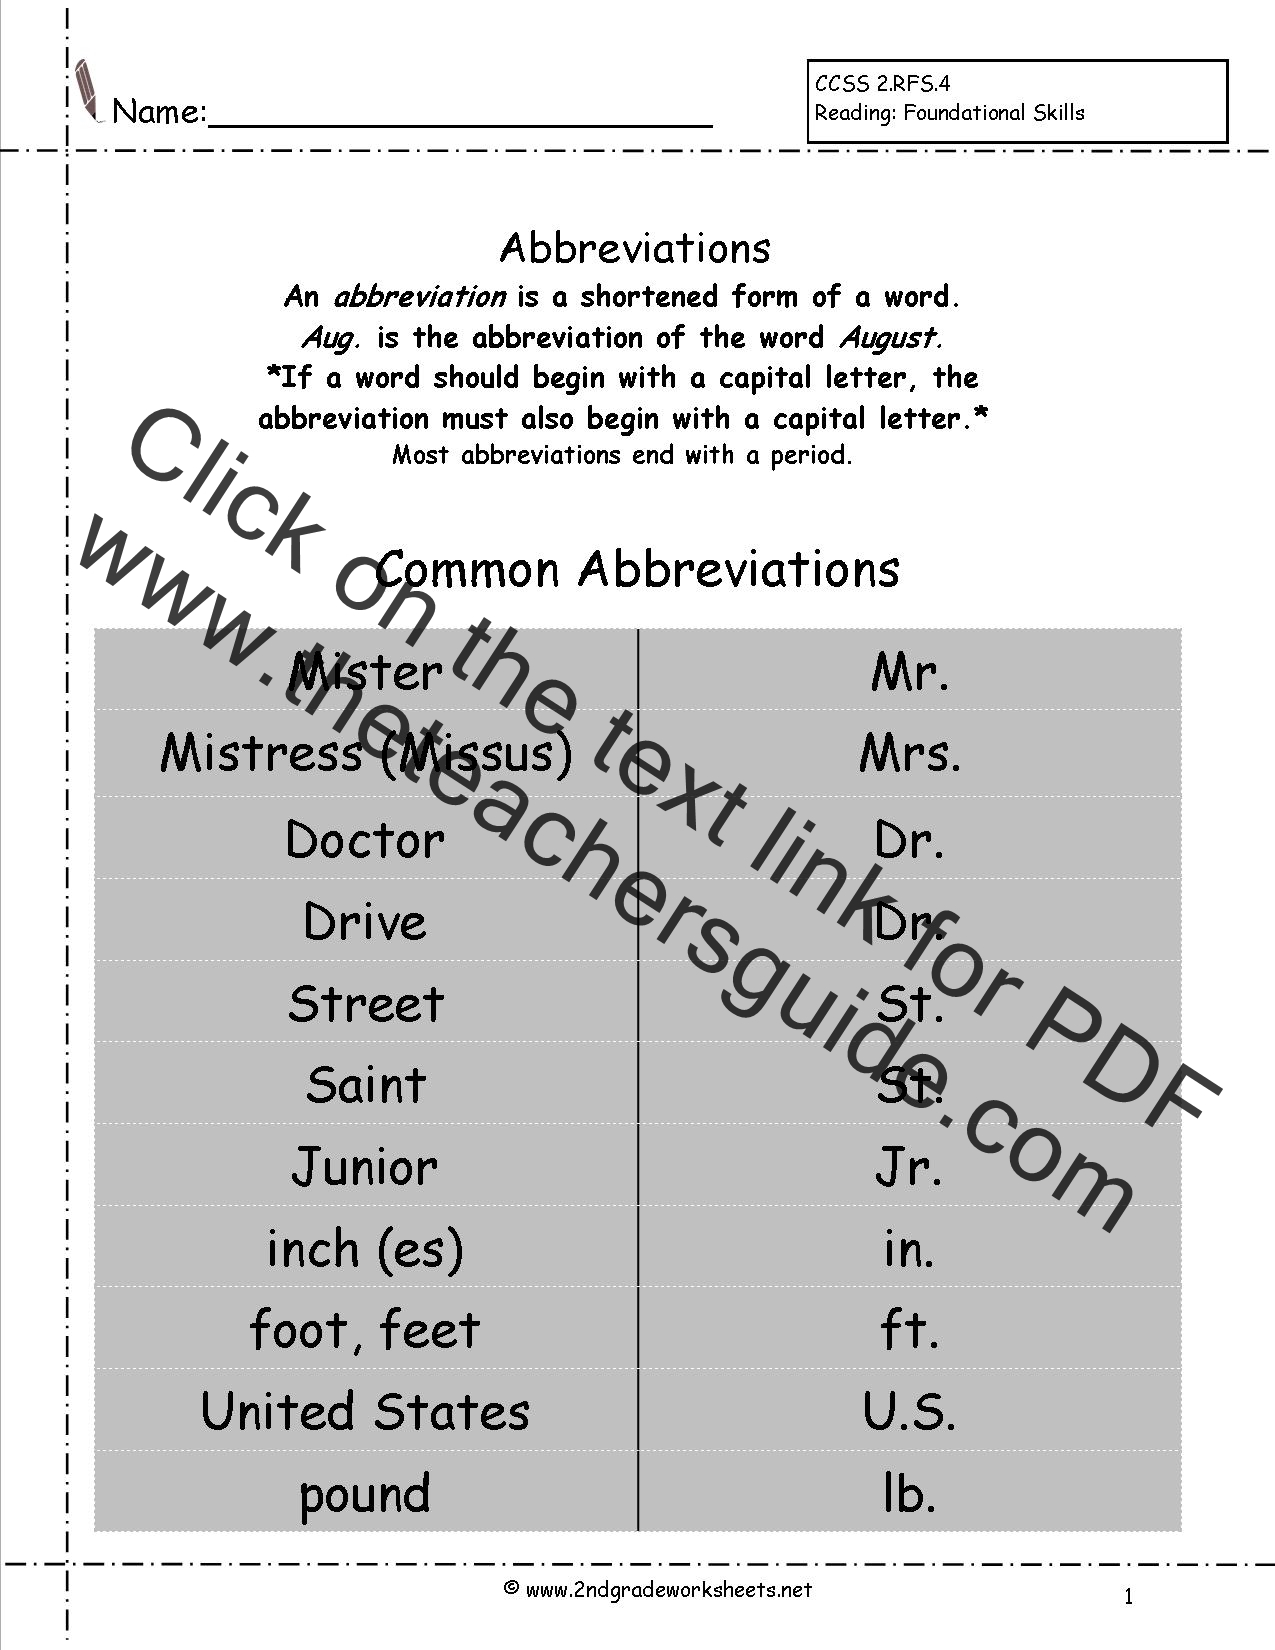 Printables 2nd Grade Writing Worksheets Free Printable free languagegrammar worksheets and printouts abbreviaitons worksheets